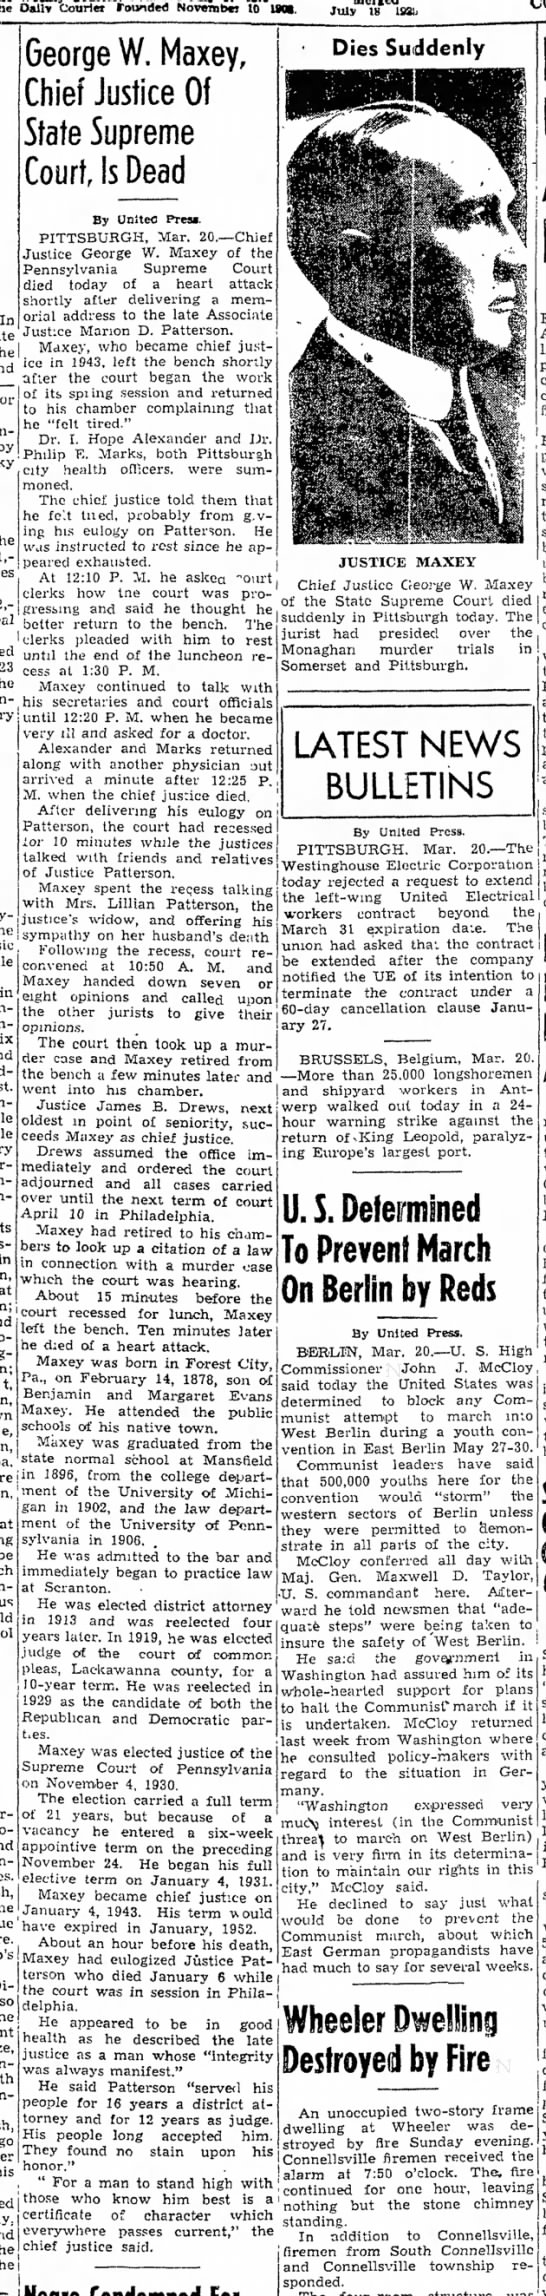 Maxey obit March 20, 1950 -